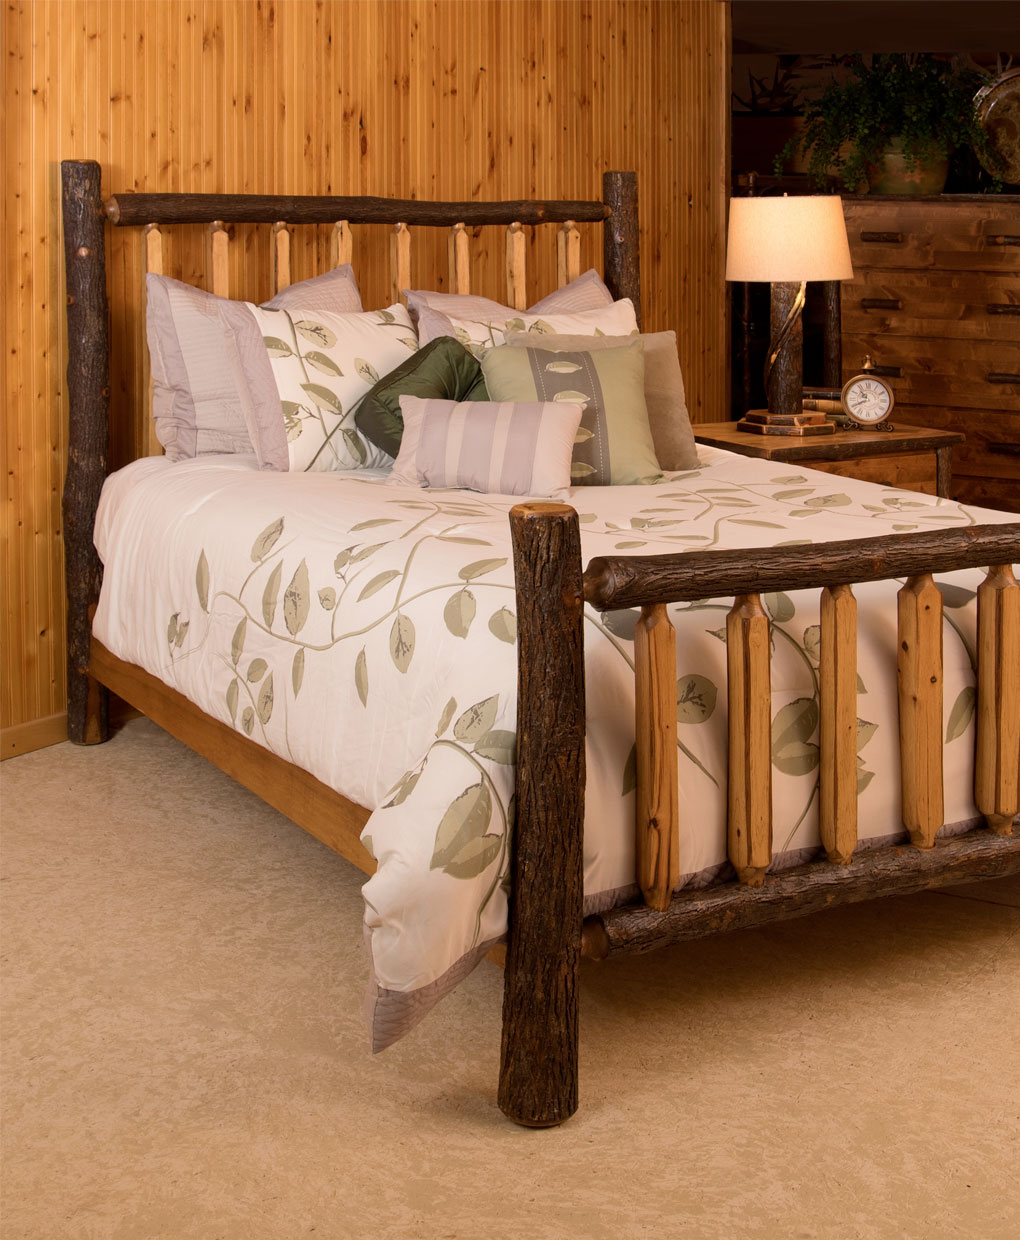 Amish Lumber Jack Shaved Spindle Bed